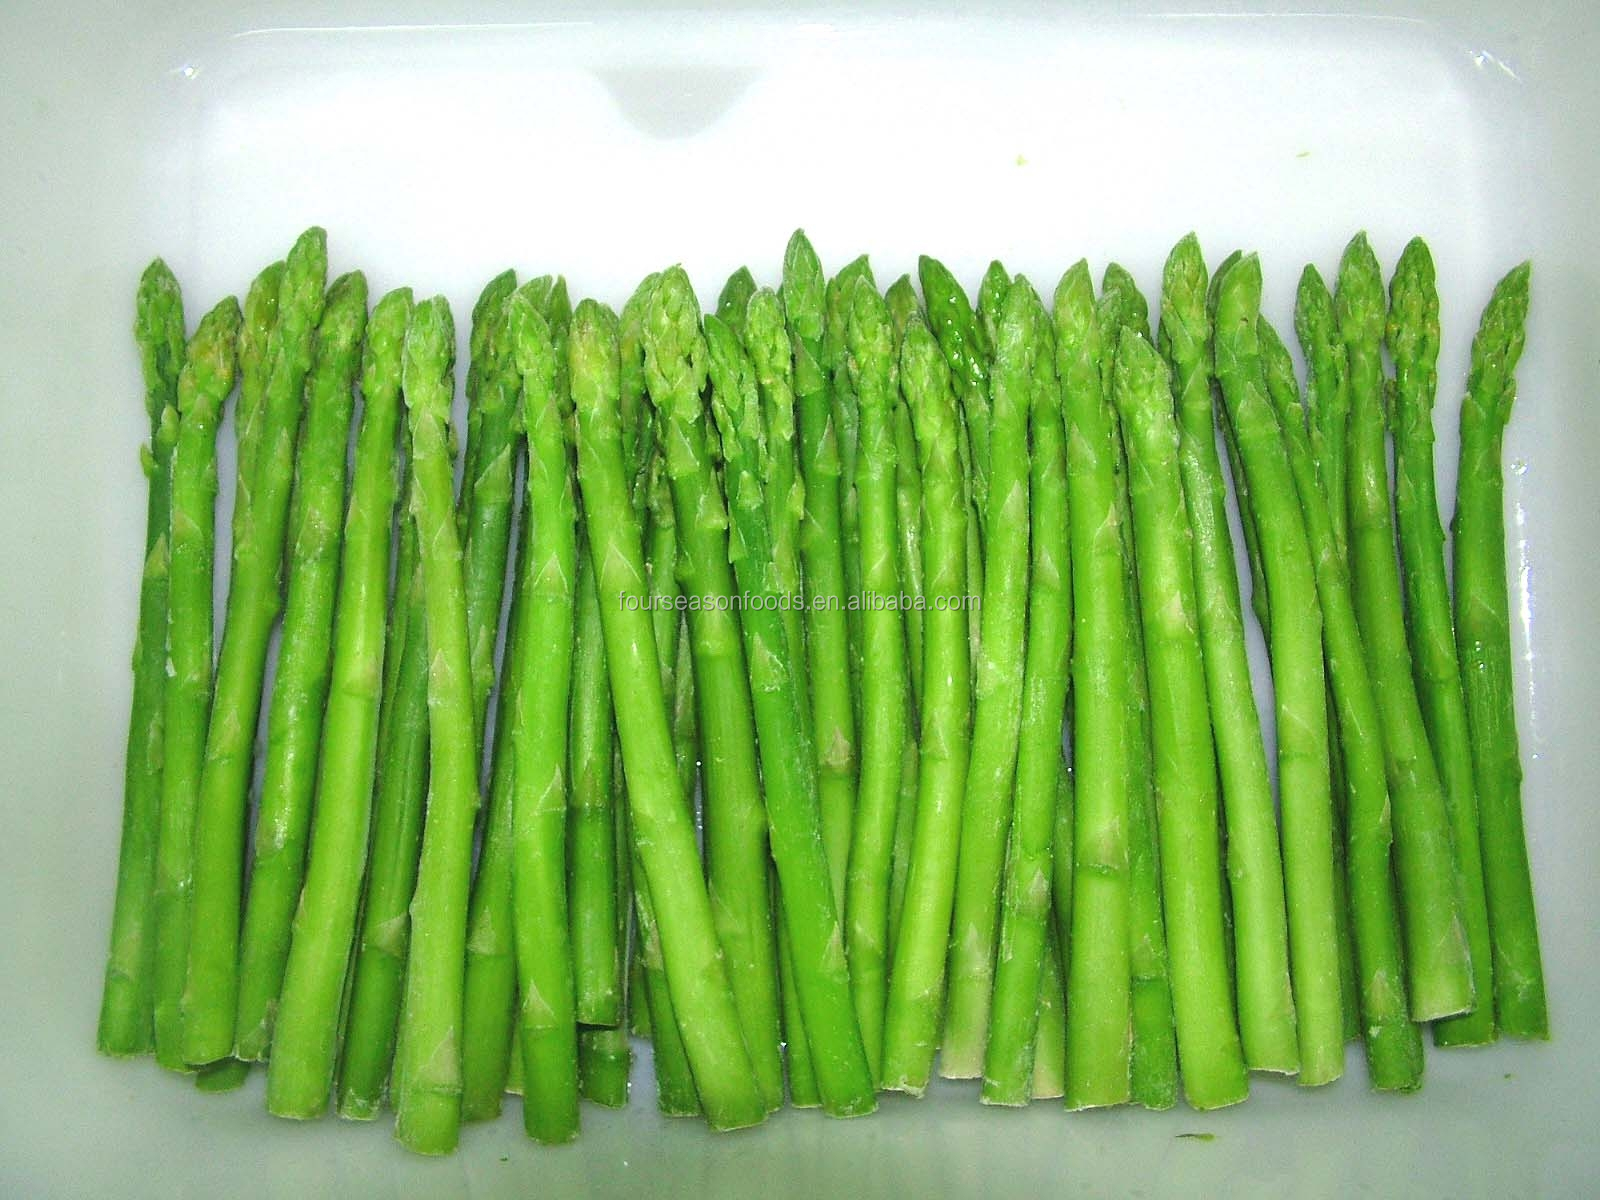 2016 Iqf frozen green asparagus spear whole / wuts / tips